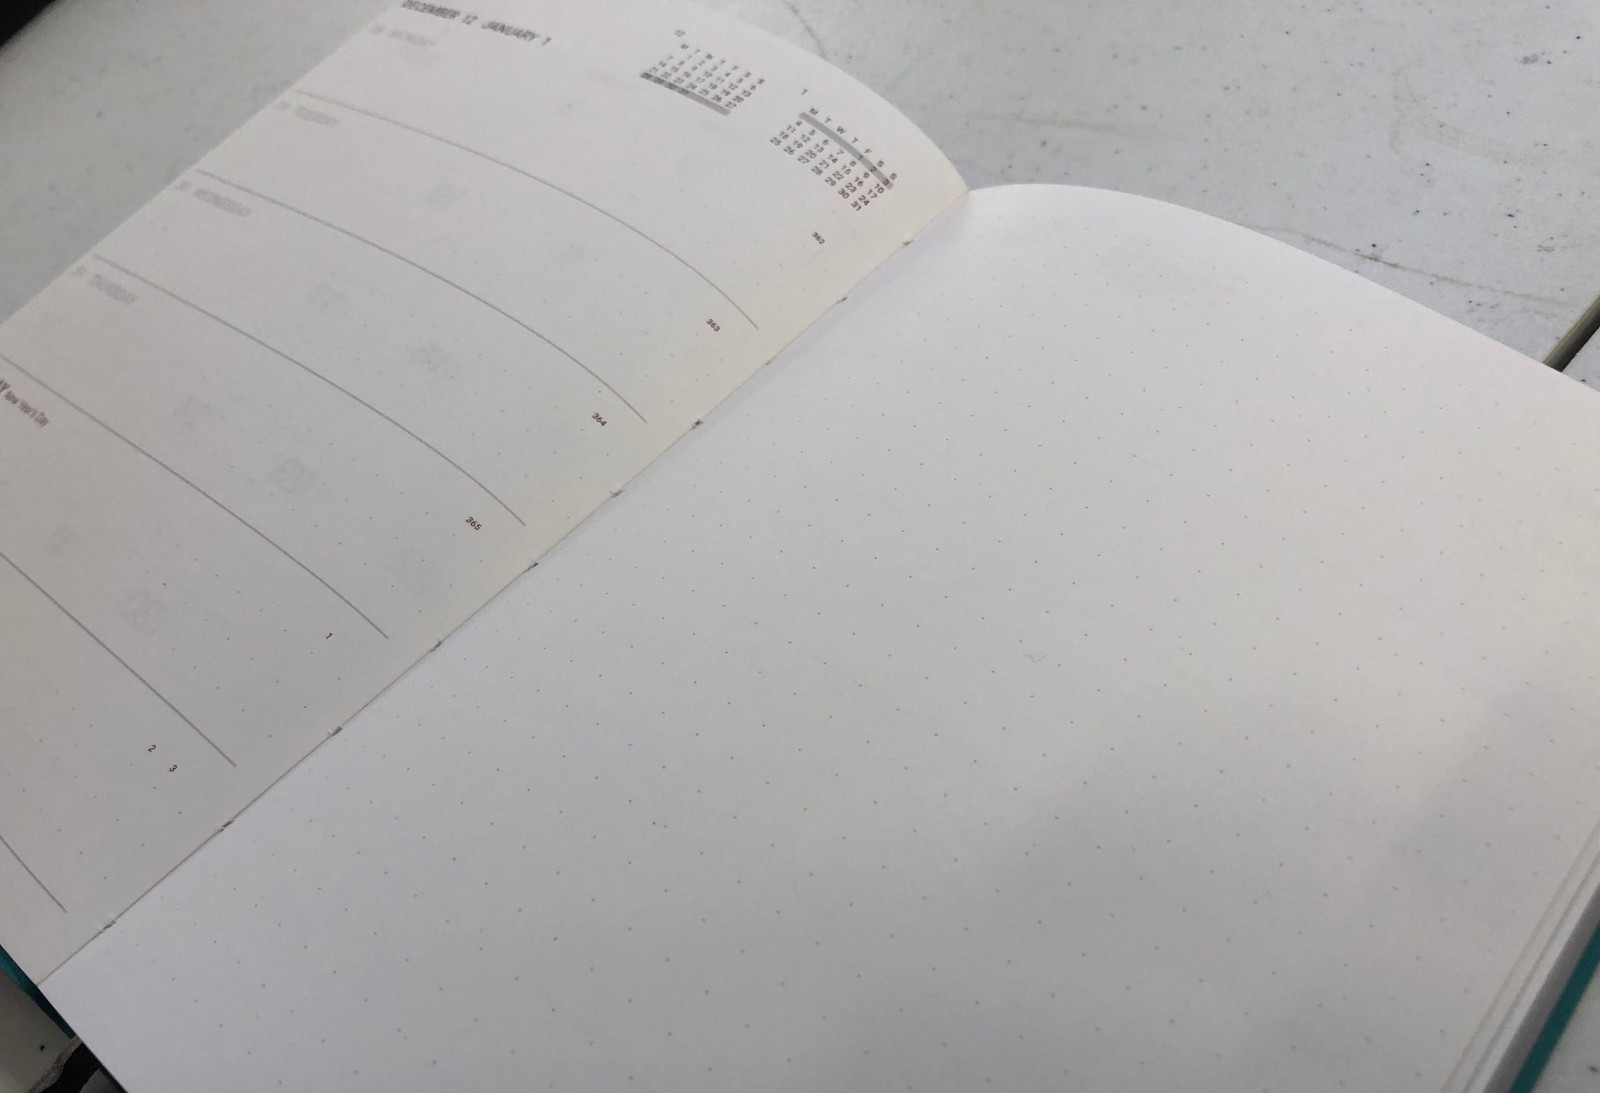 Memmo 2021 Diary - Wavy Lines *LIMITED EDITION*